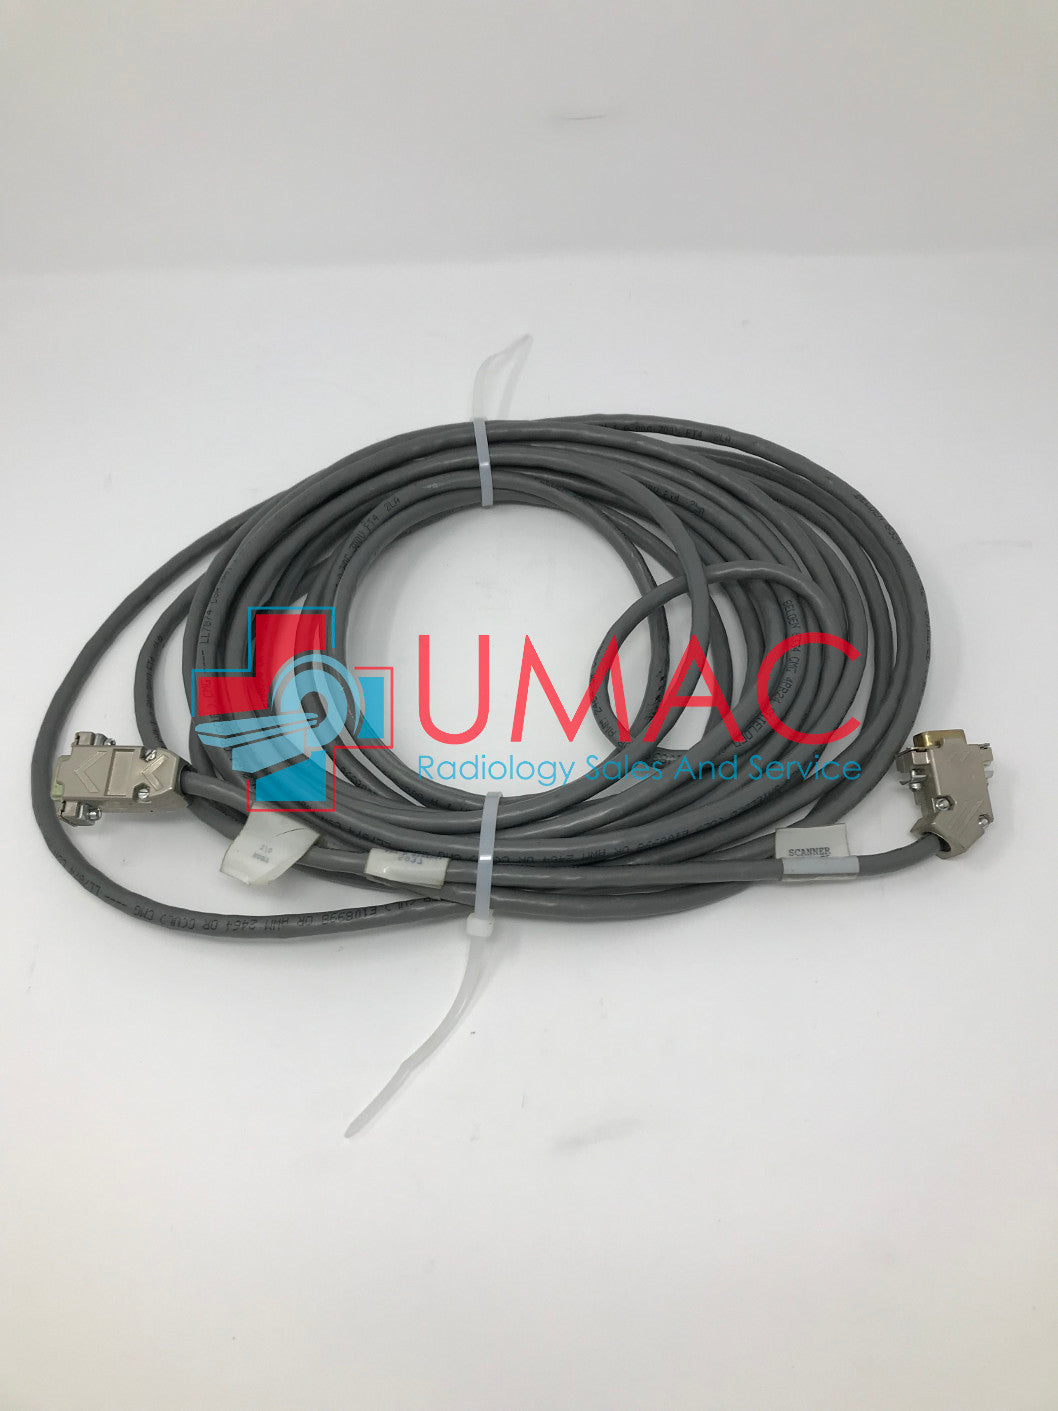 GE Lunar Prodigy Bone Density LNR-5937 Serial I/O Cable